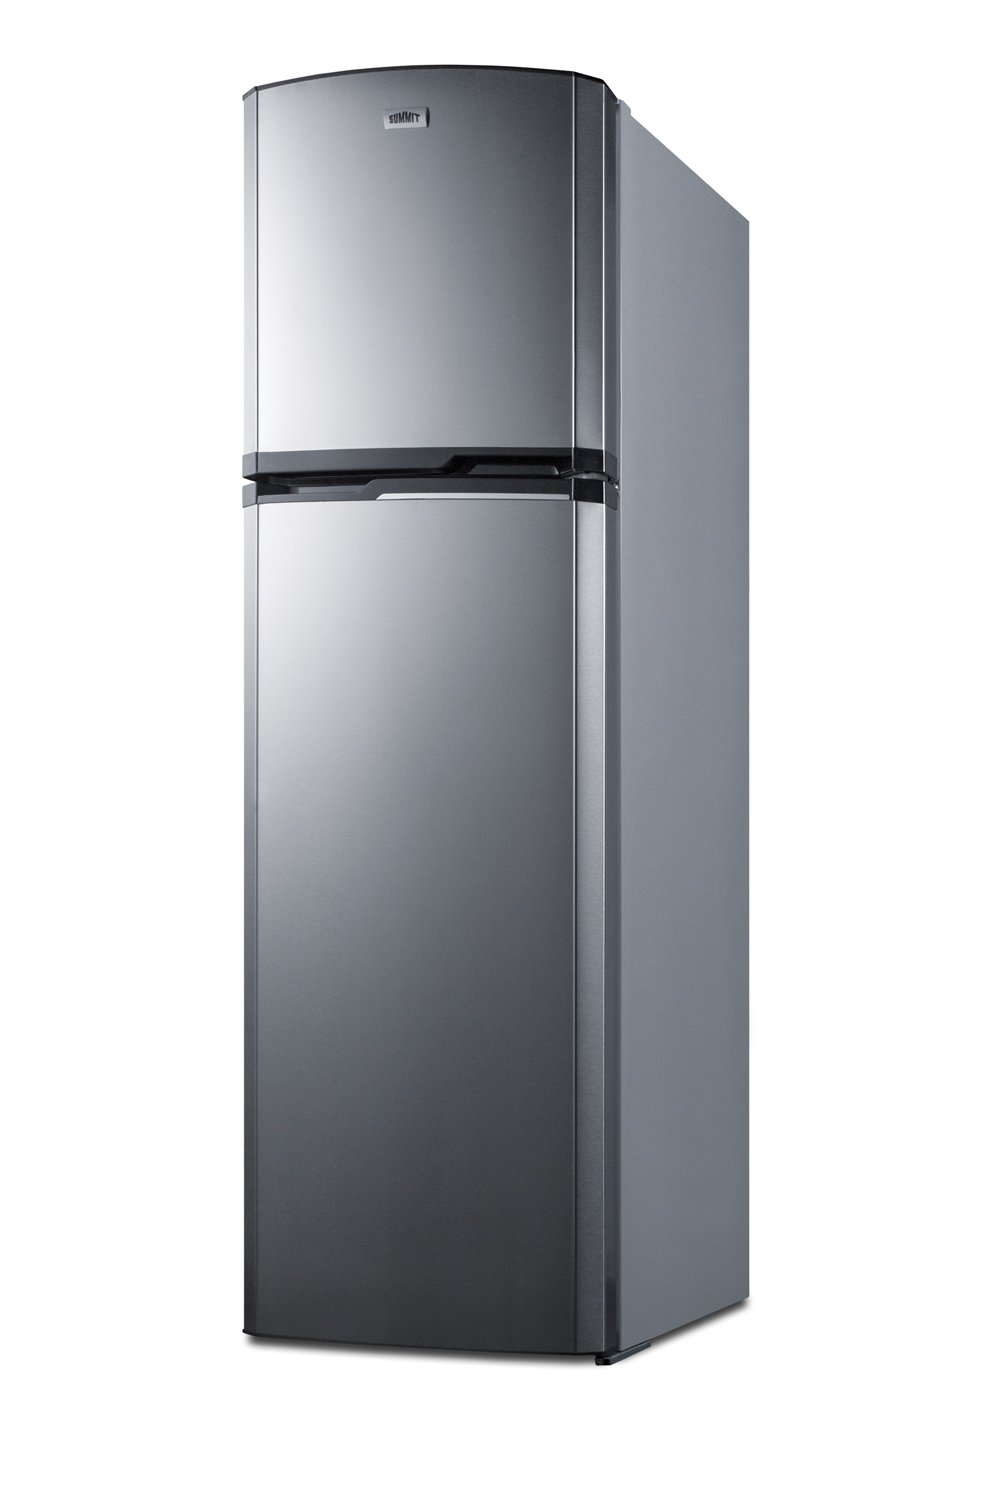 Summit FF948SS 8.8 cu.ft. Frost-Free Refrigerator-Freezer In Slim 22'' Width For Small Kitchens, Stainless Steel by Summit Appliance